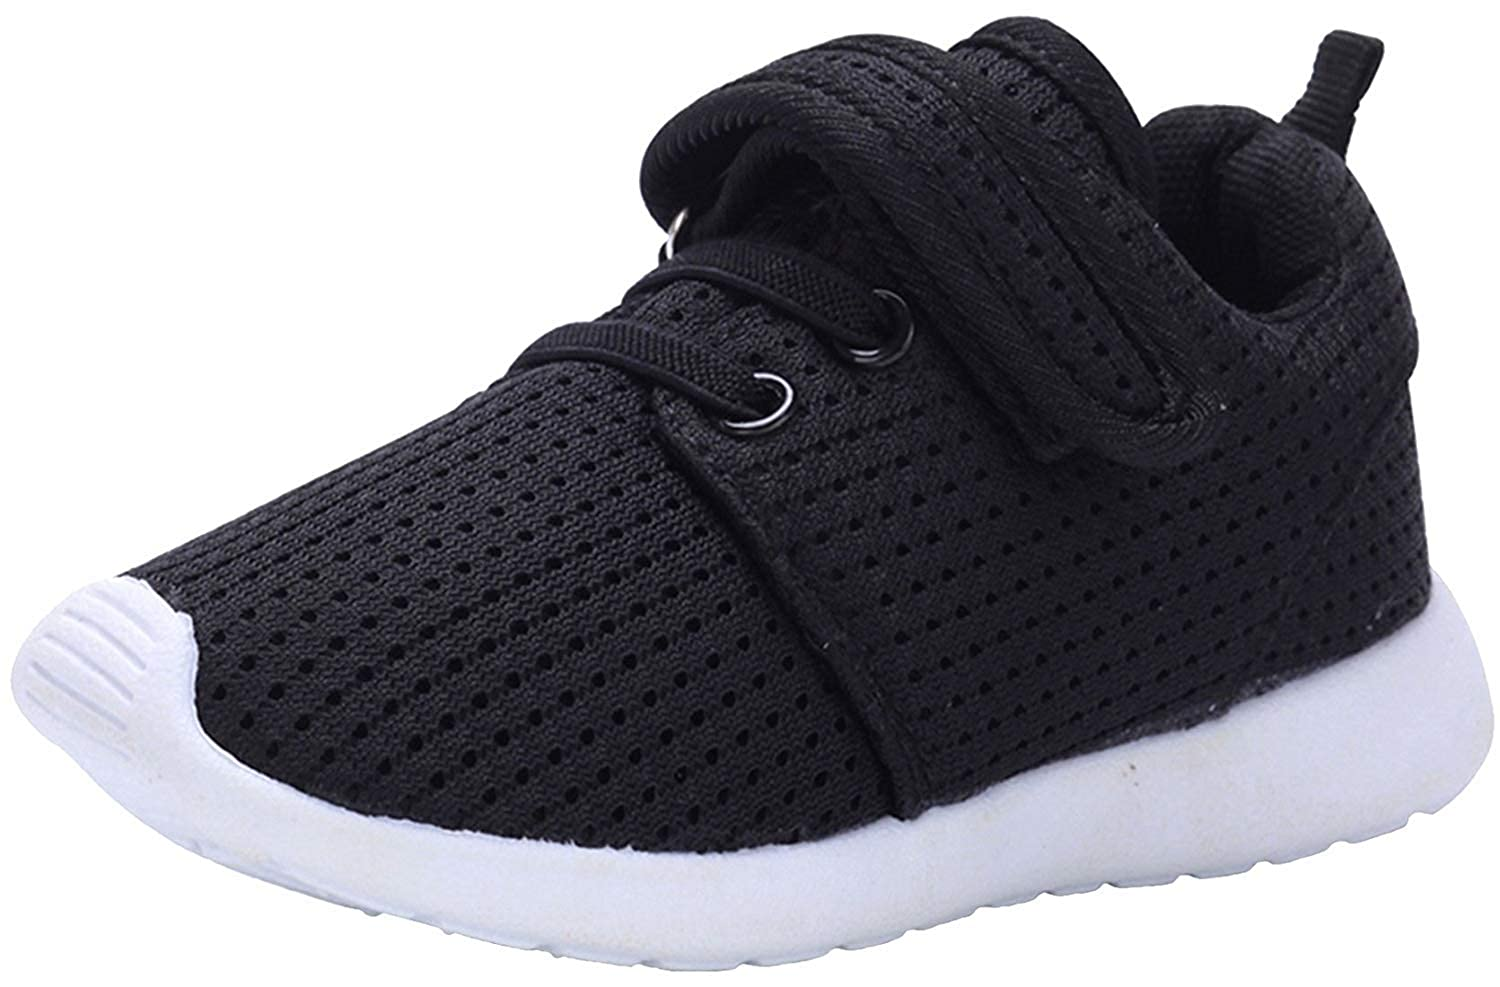 MOREMOO Boys Girls Breathable Magic Tape Casual Sneaker Running Shoes